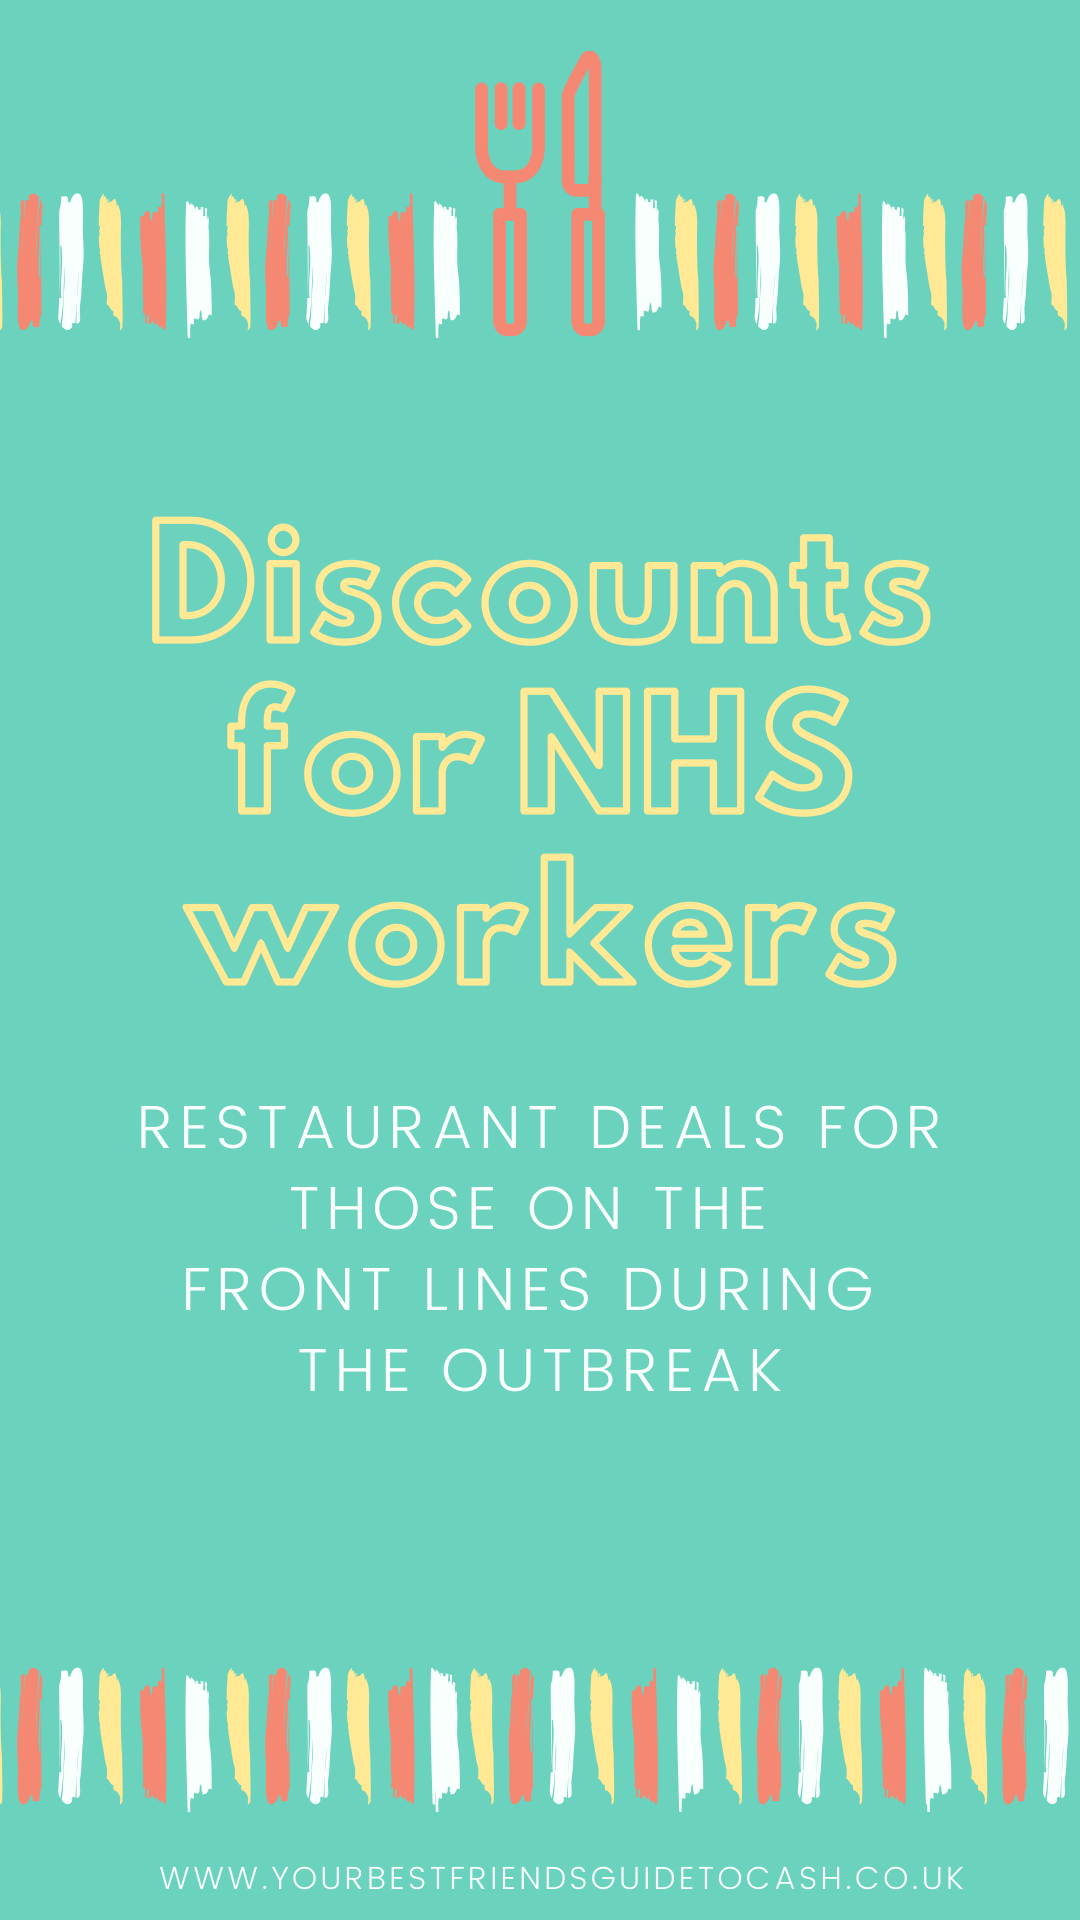 Discounts for NHS workers during the outbreak